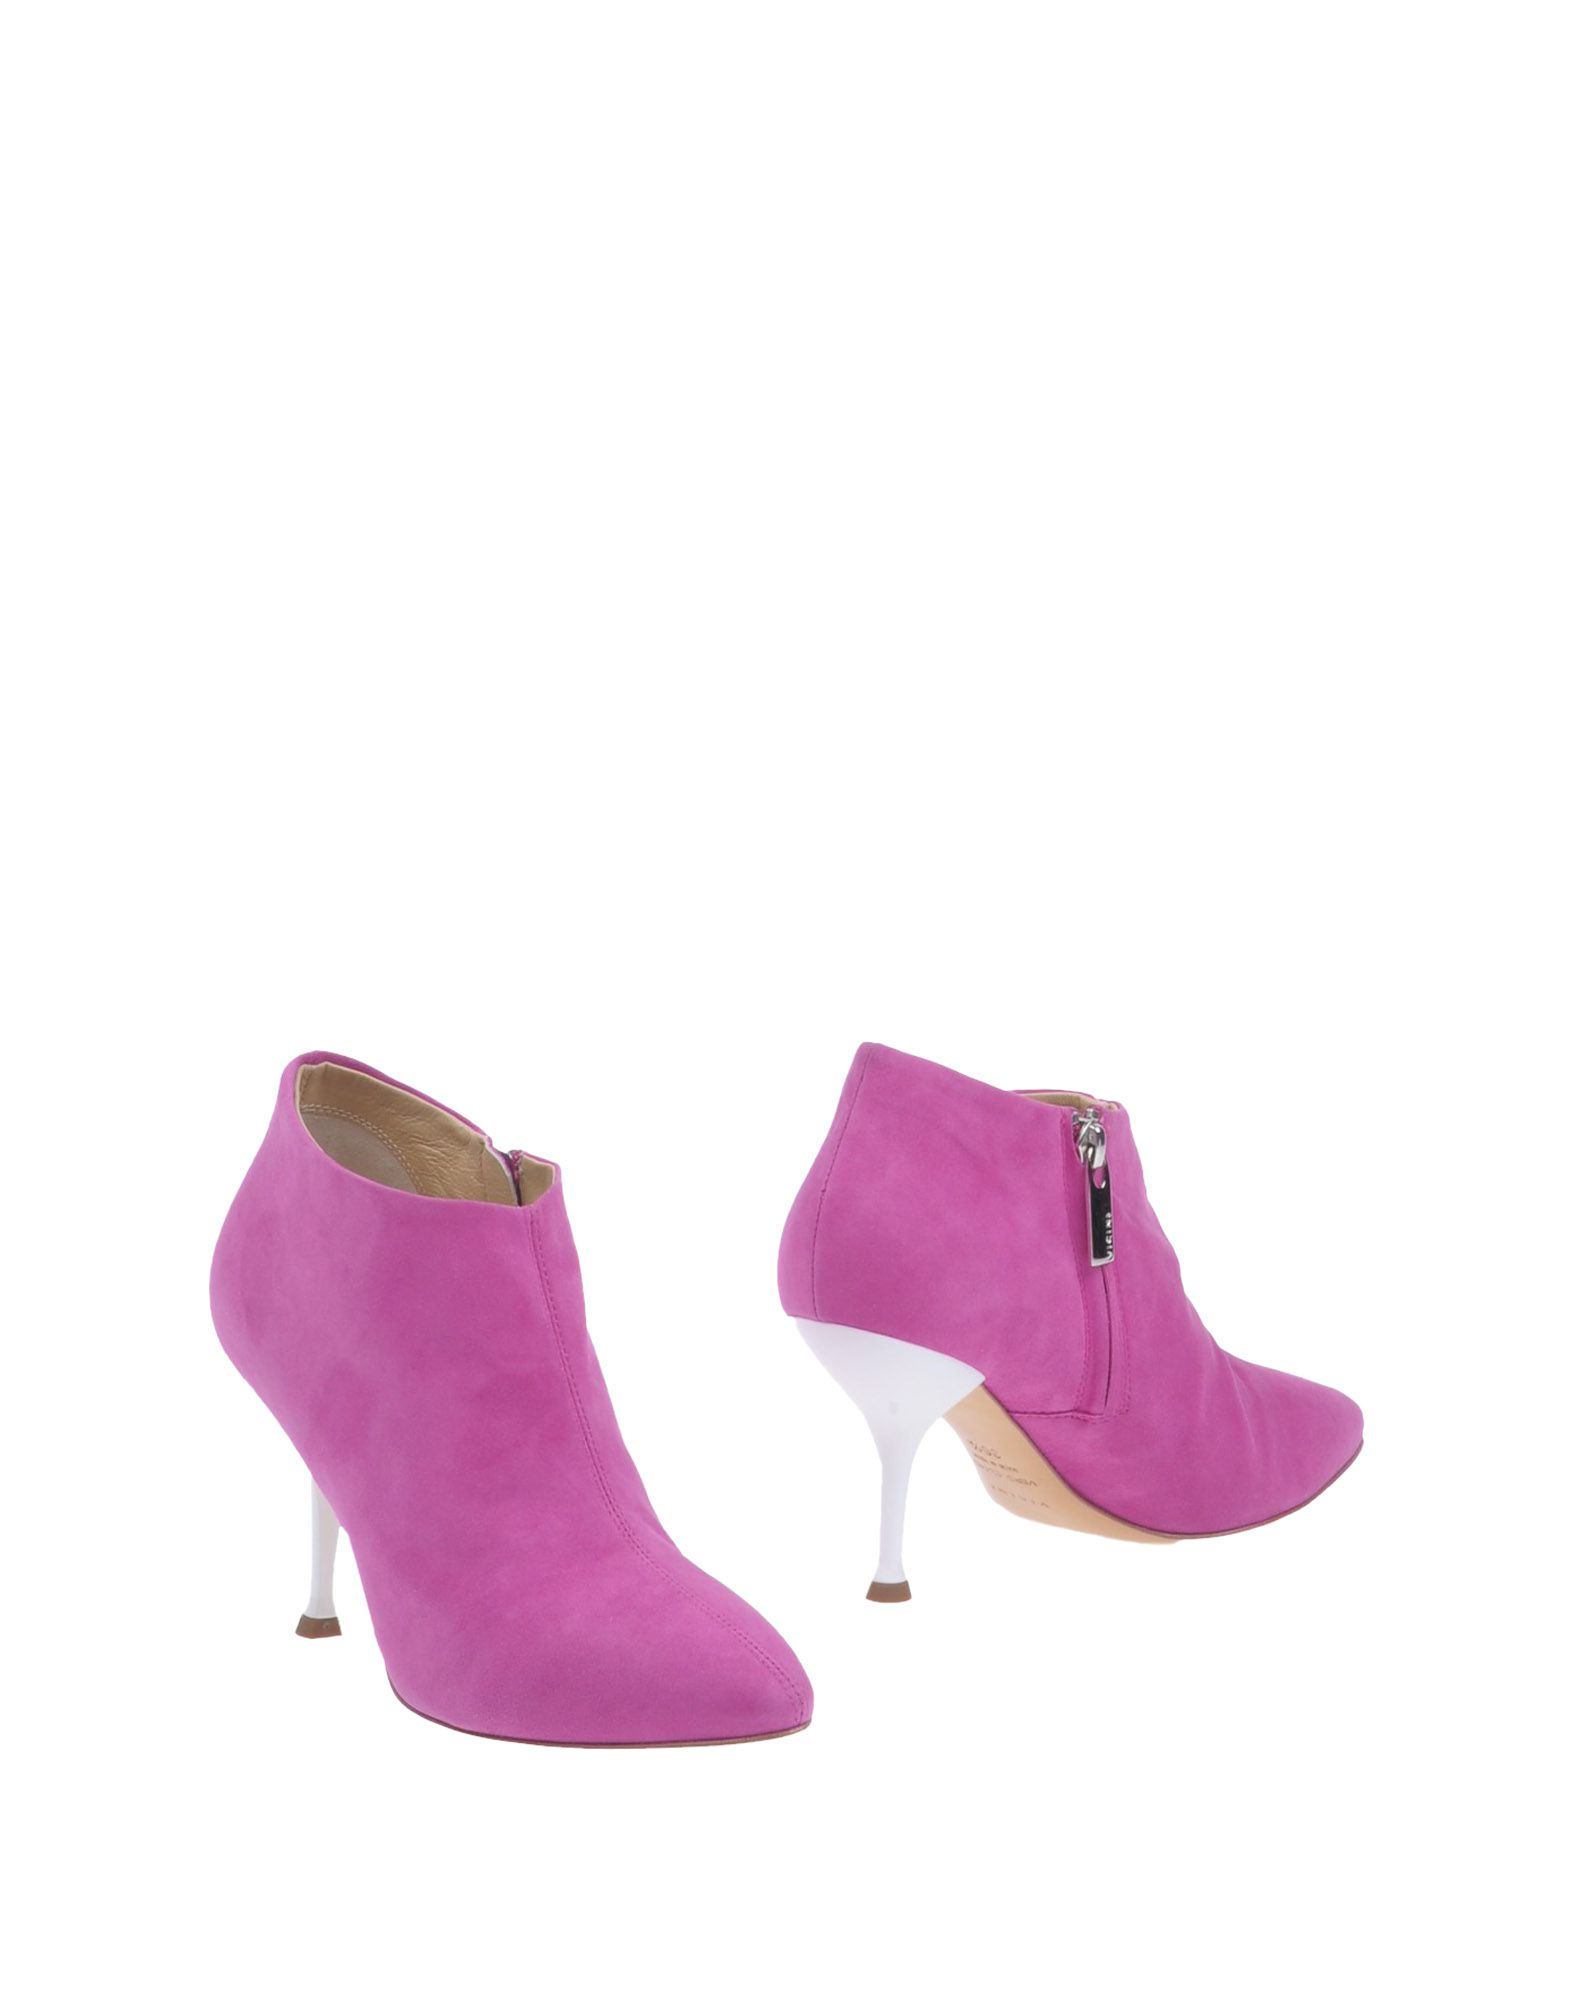 Bottine Vicini Femme - Bottines Vicini Fuchsia Confortable et belle